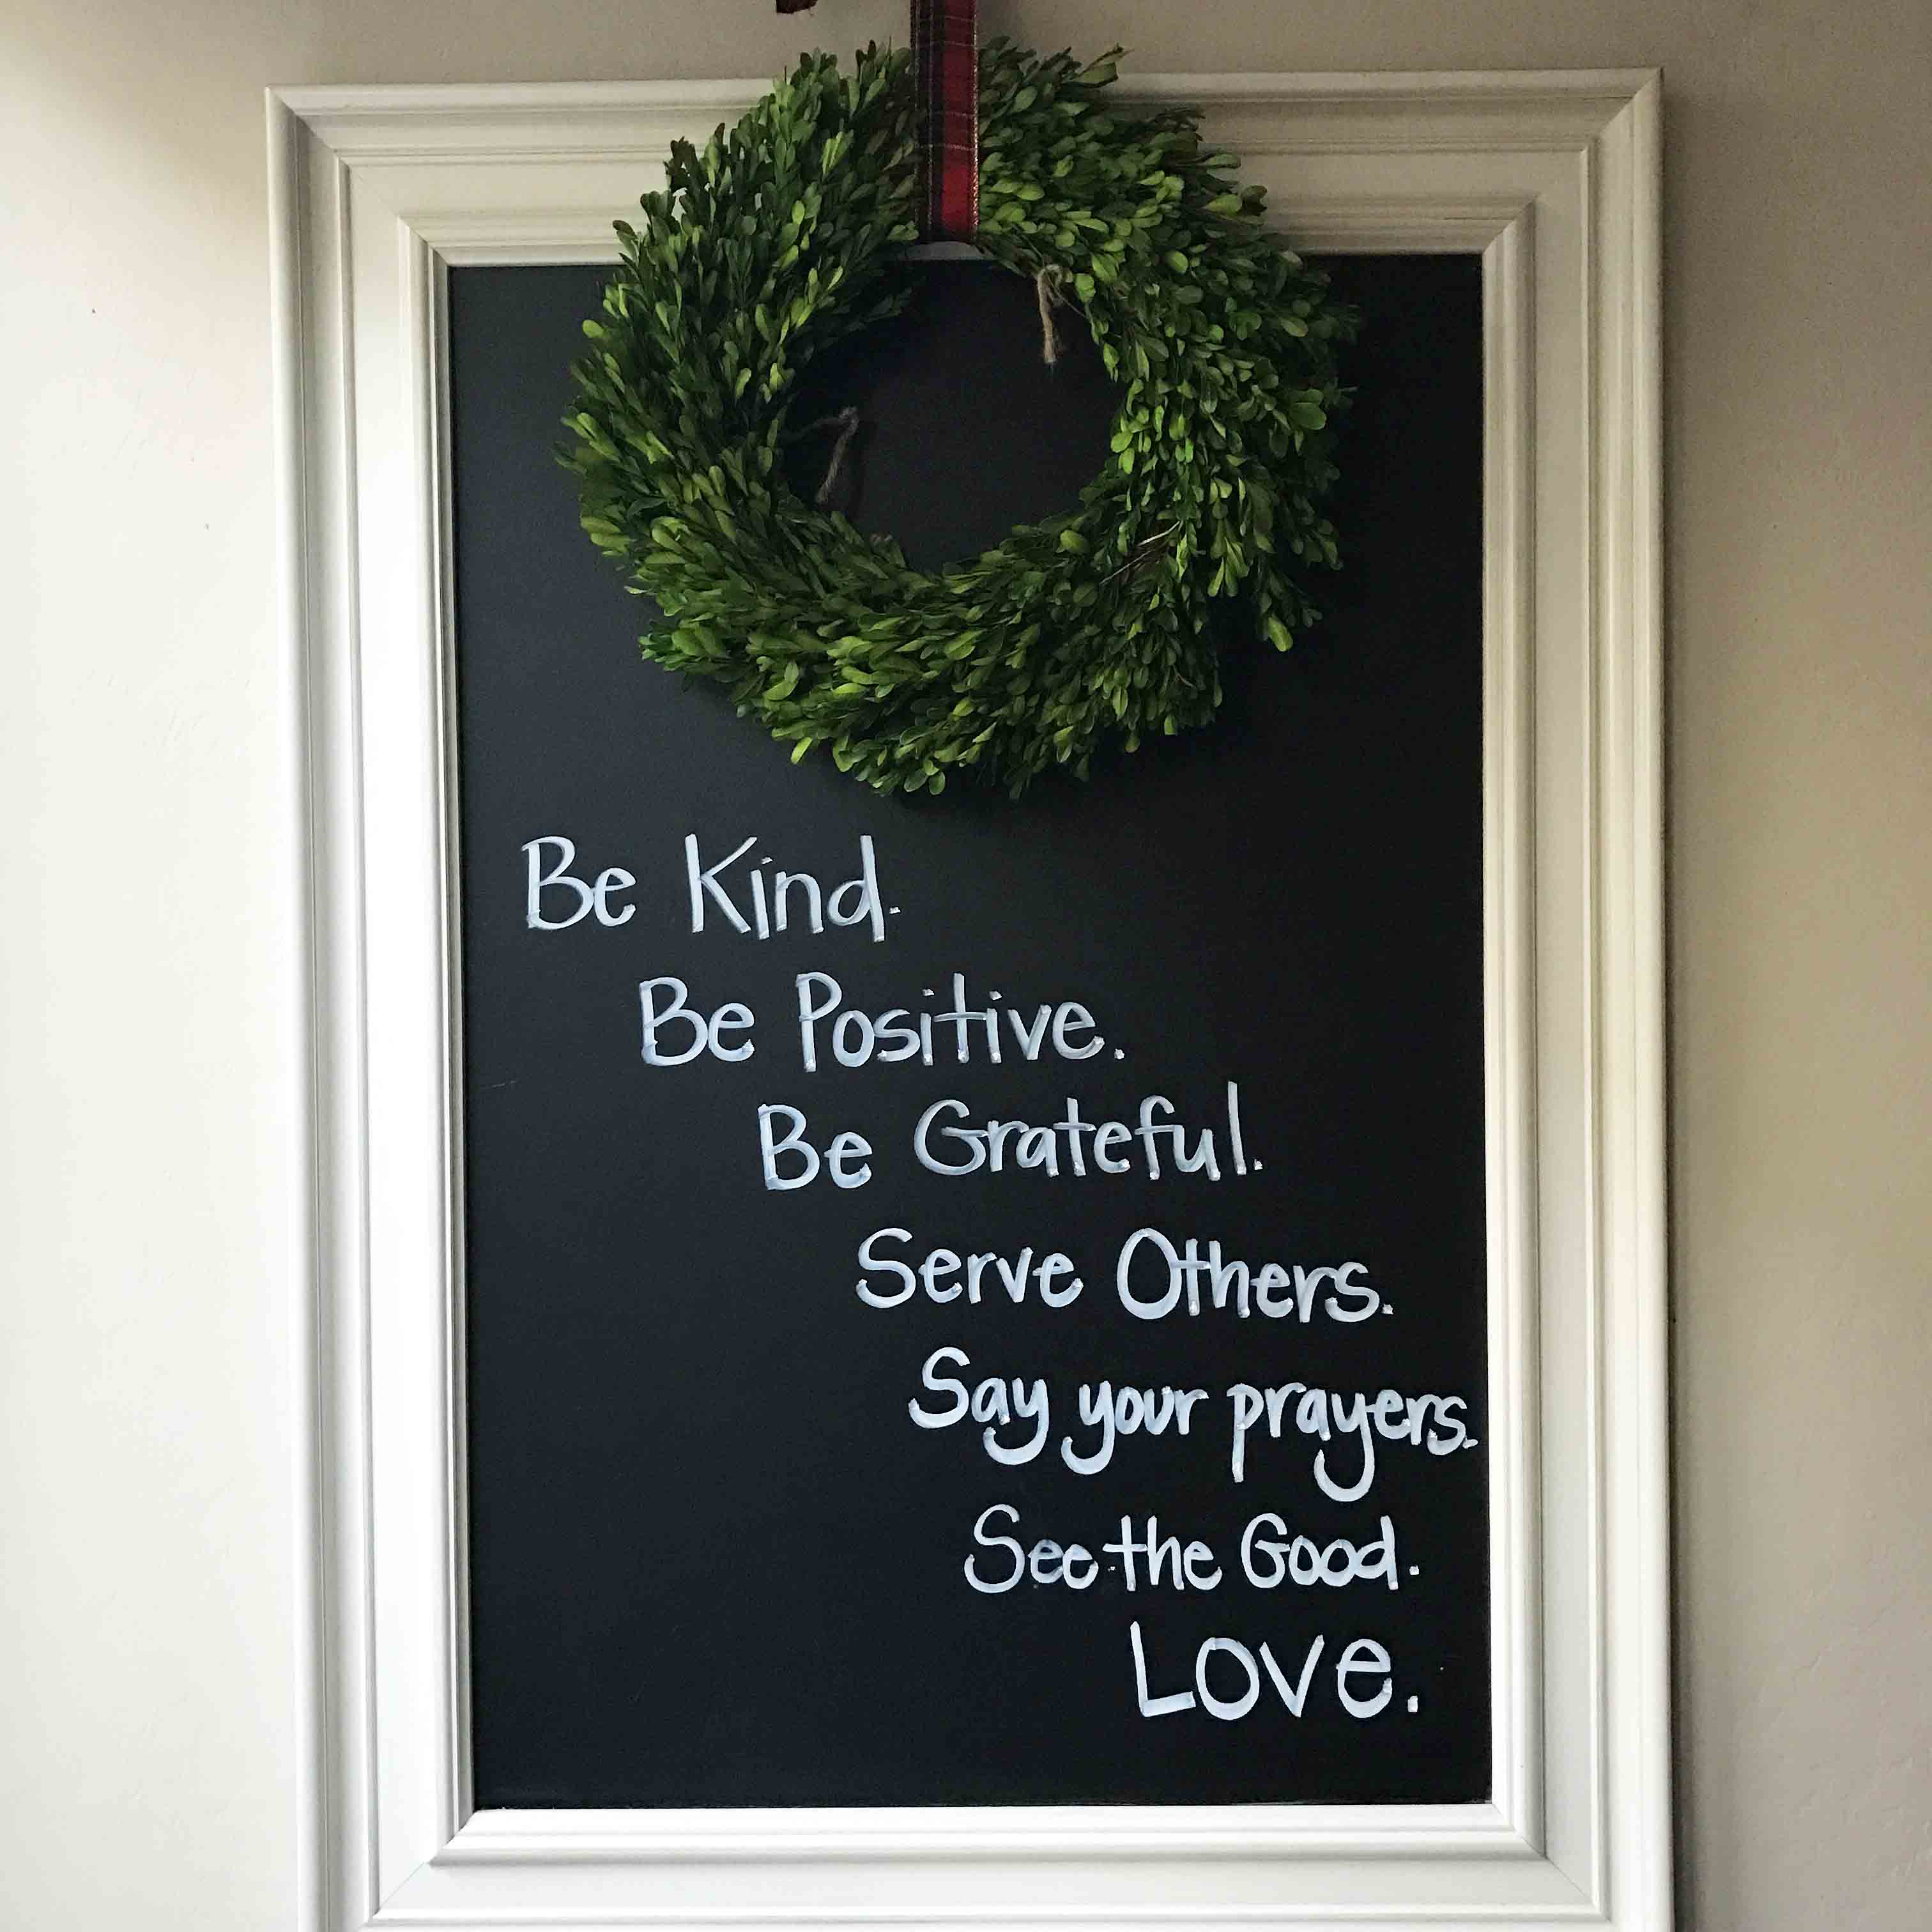 Christmas Decor Ideas by Modern Honey. Beautiful ways to transform your home for Christmas. Inspirational Chalkboard -- Be Kind. Be Positive. Be Grateful. Serve Others. Say your Prayers. See the Good. Love.